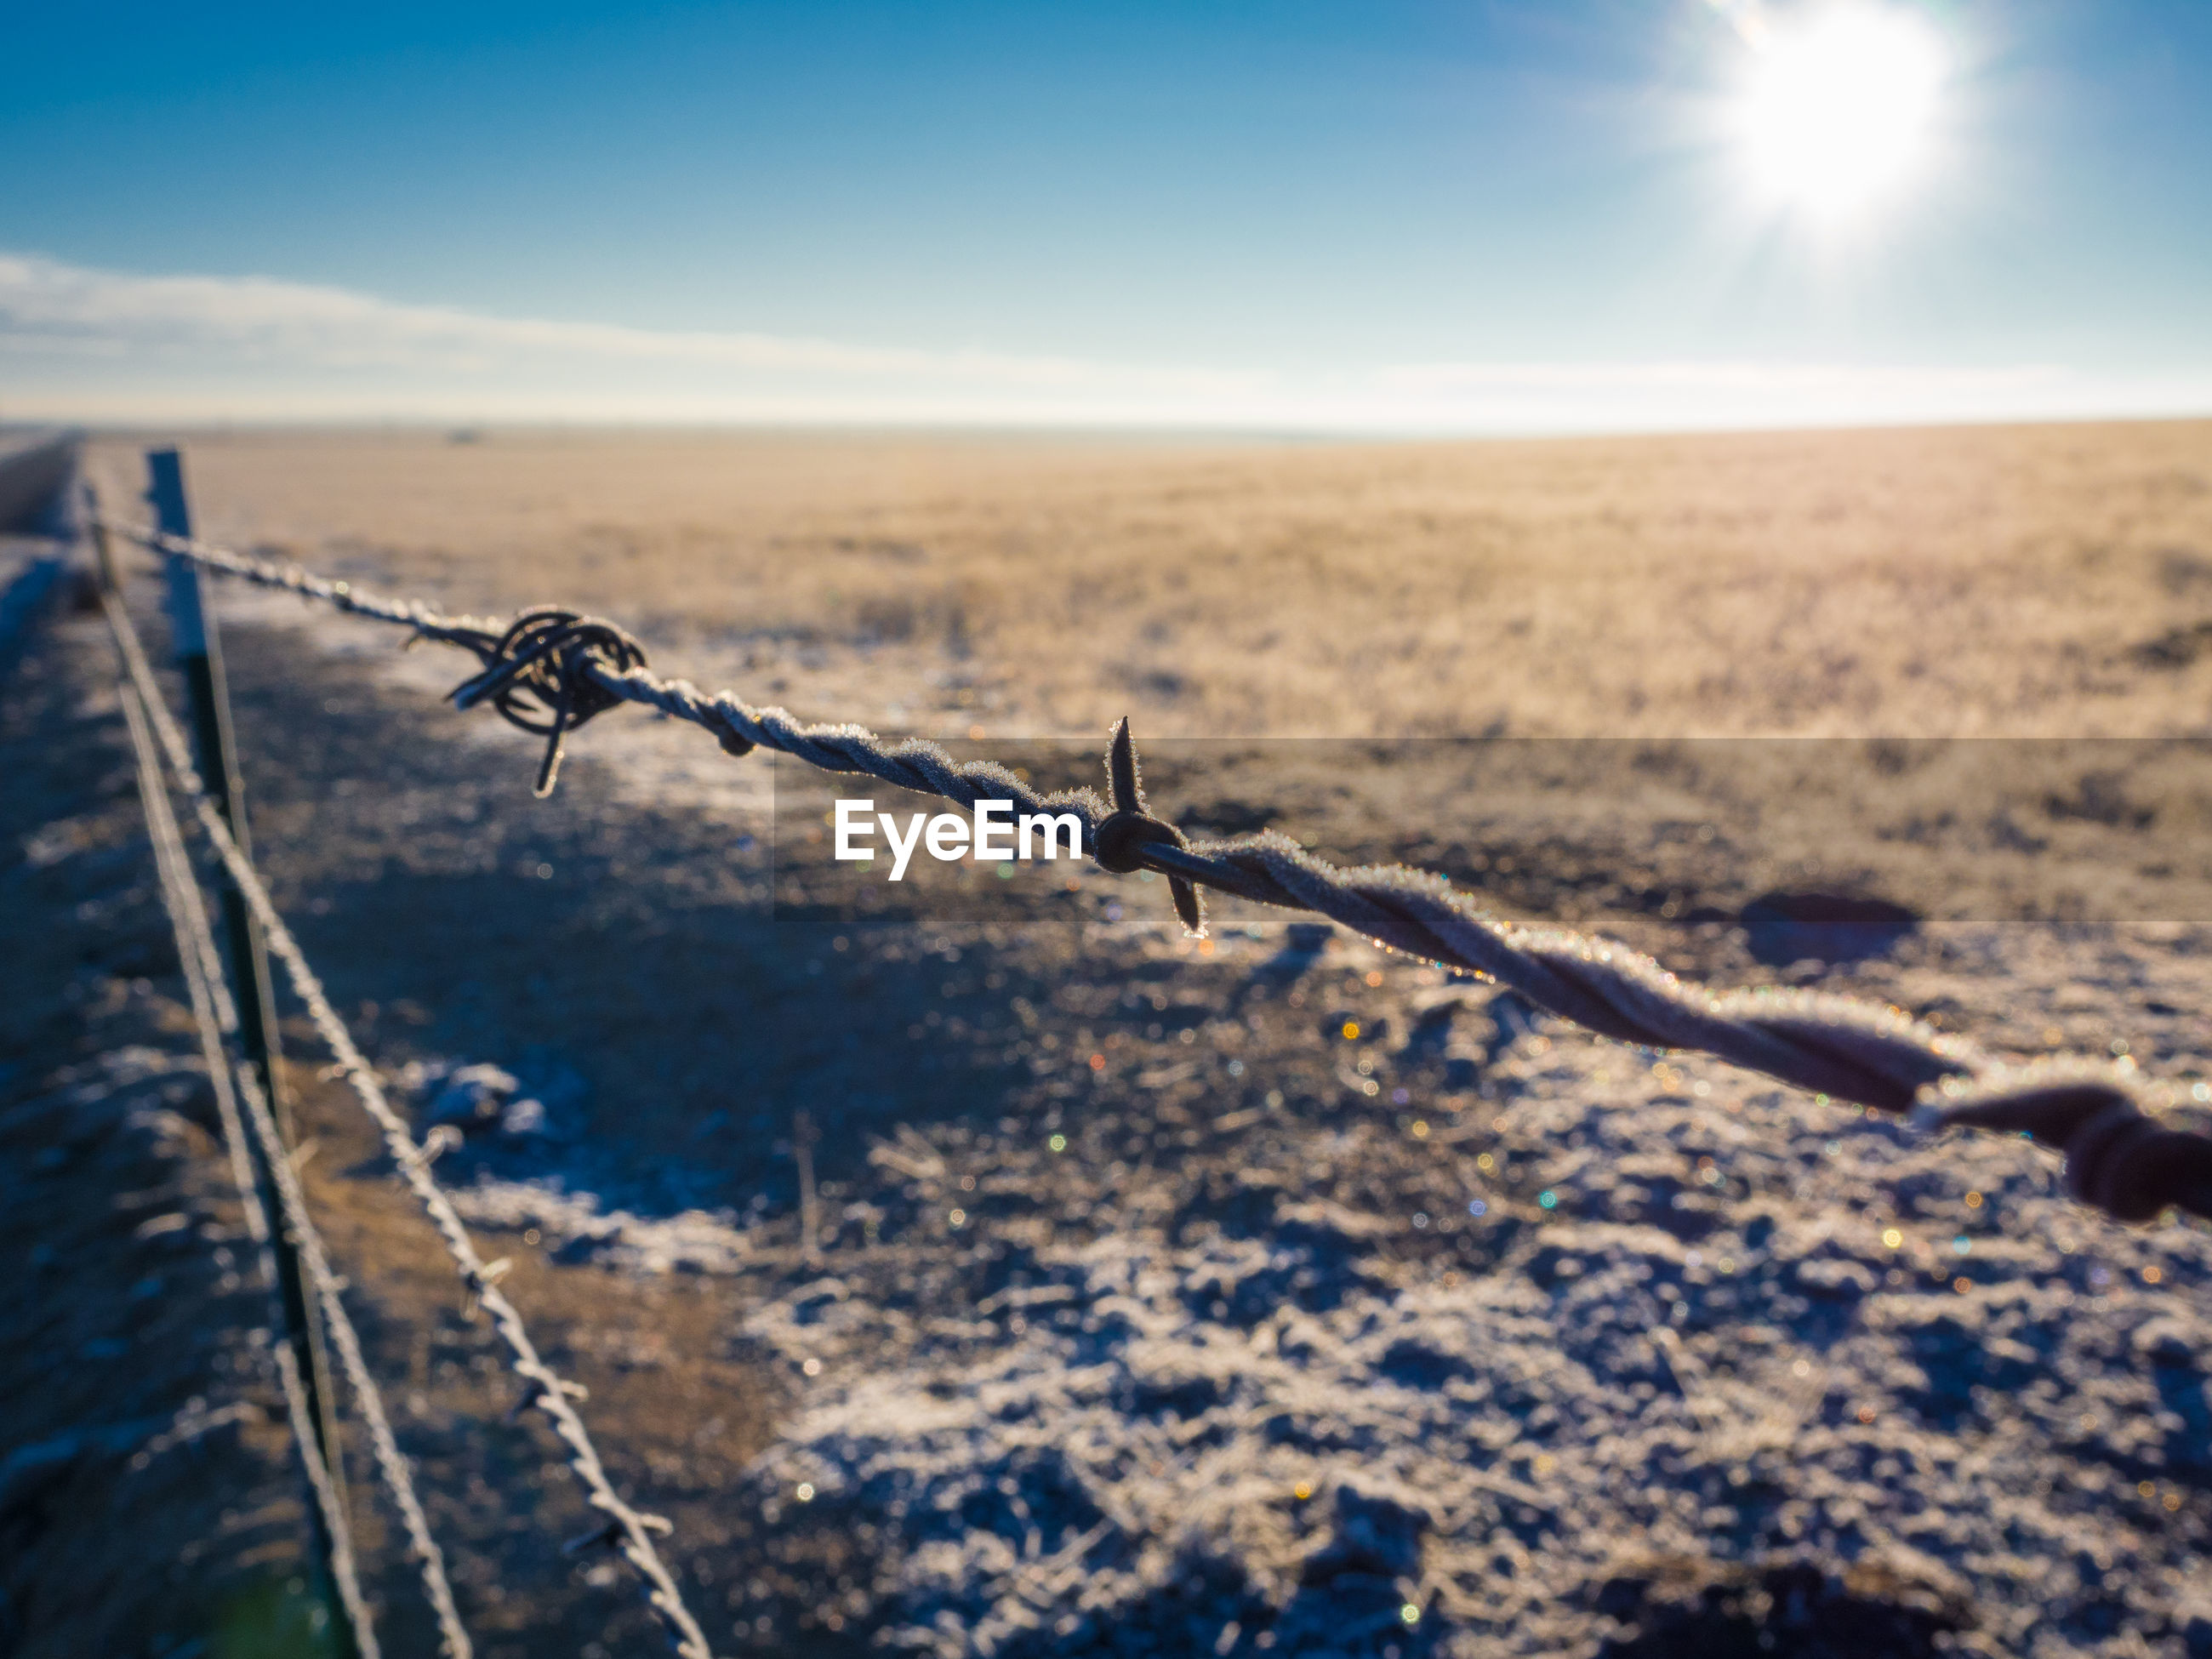 Close-up of frosted barbed wire fence on field against sky